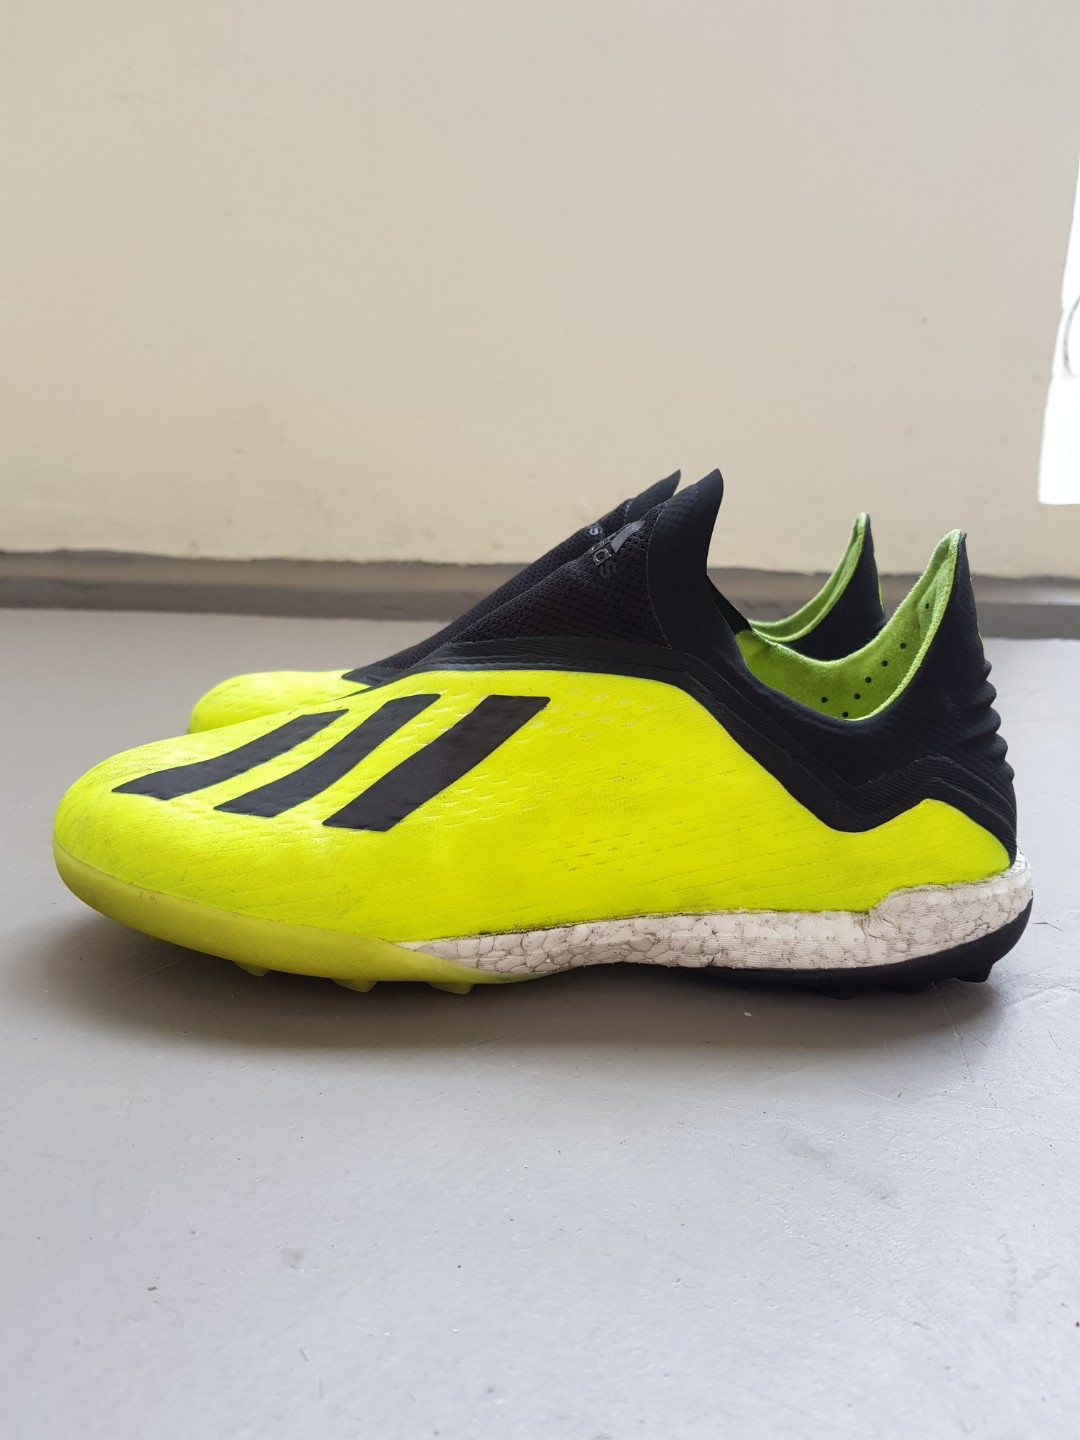 low priced 4ffdb 4ca69 Adidas X Tango 18+ Turf Boots, Sports, Sports Apparel on Car